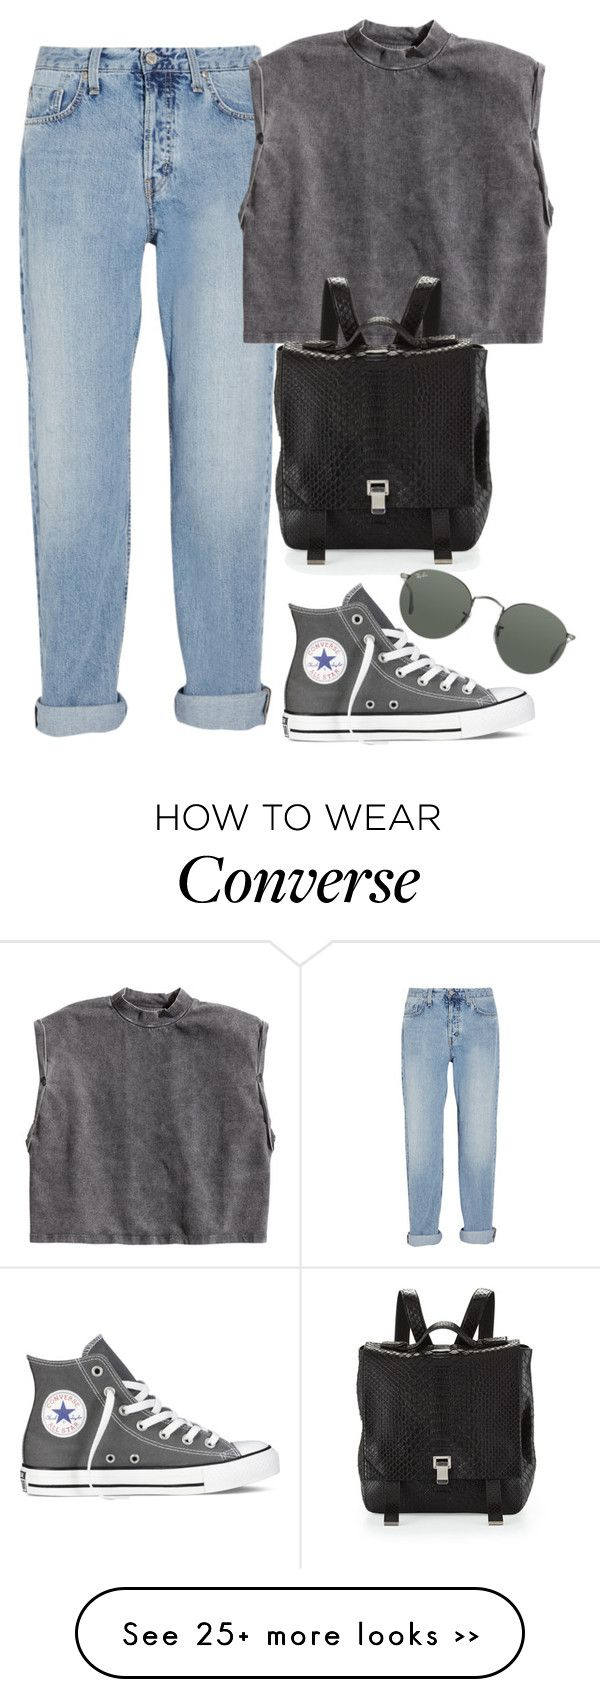 """""""Untitled #361"""" by fayeedaly on Polyvore featuring moda, MiH Jeans, H&M, Converse, Proenza Schouler e Ray-Ban"""